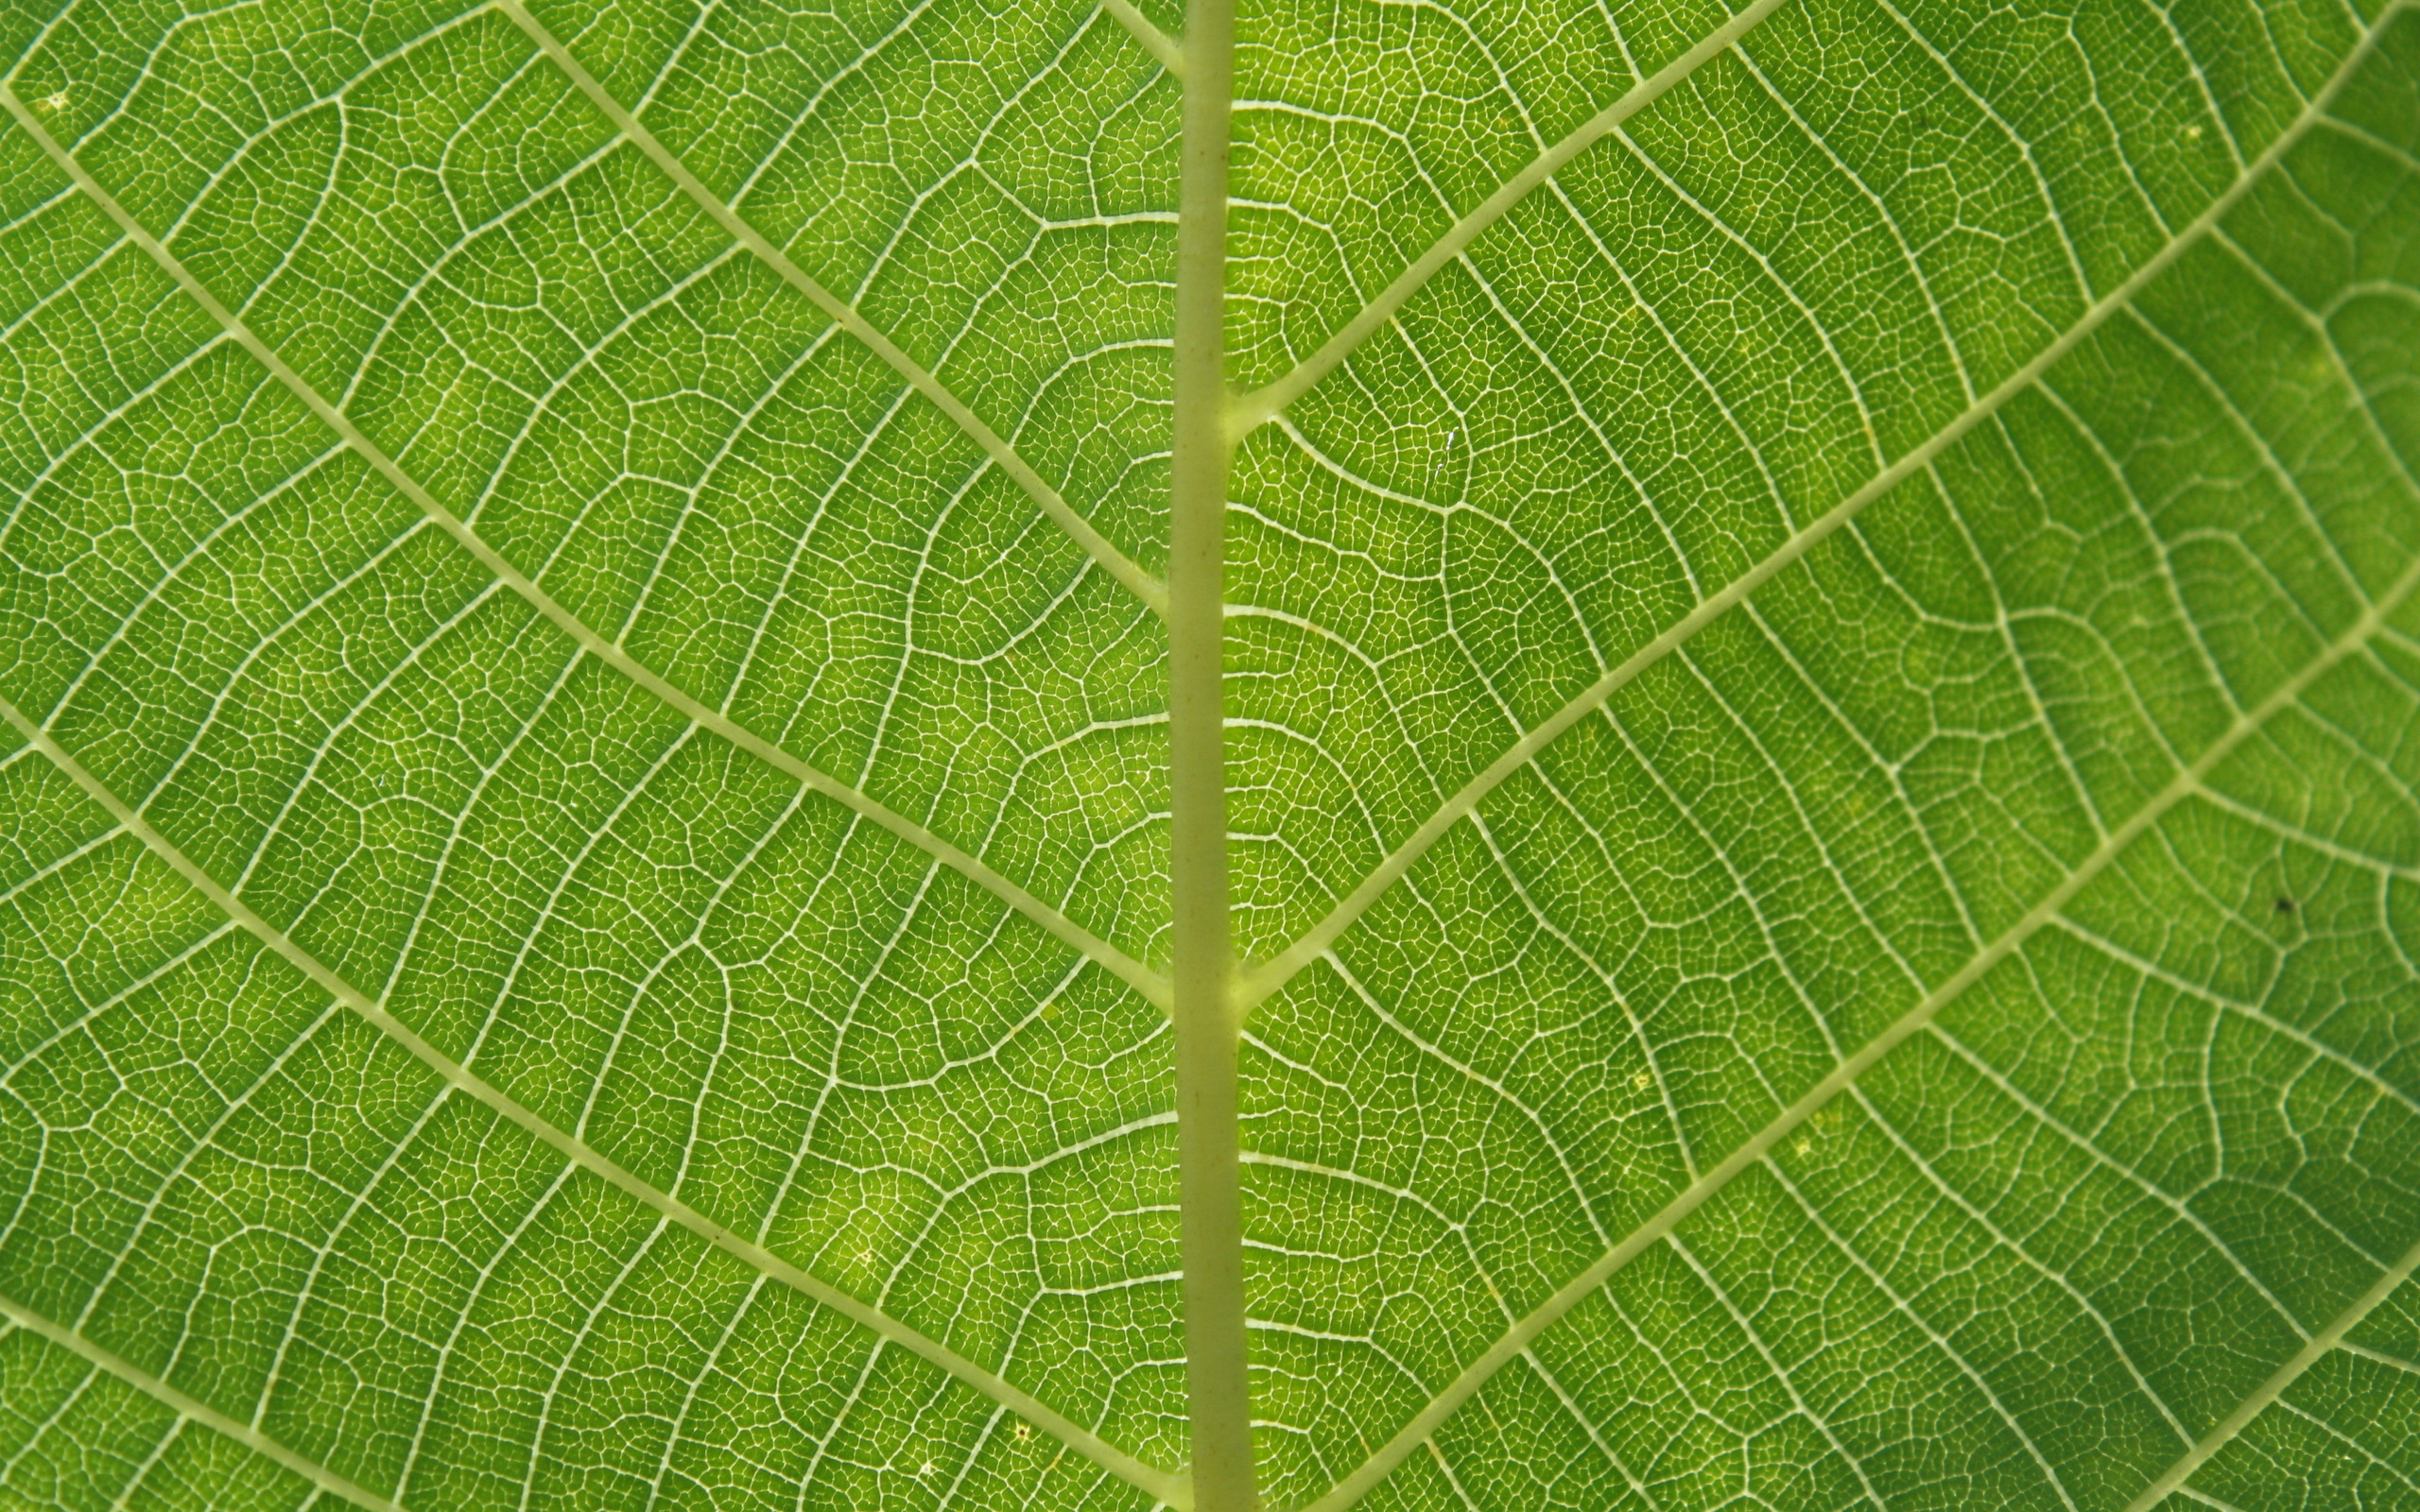 green leaf texture background image